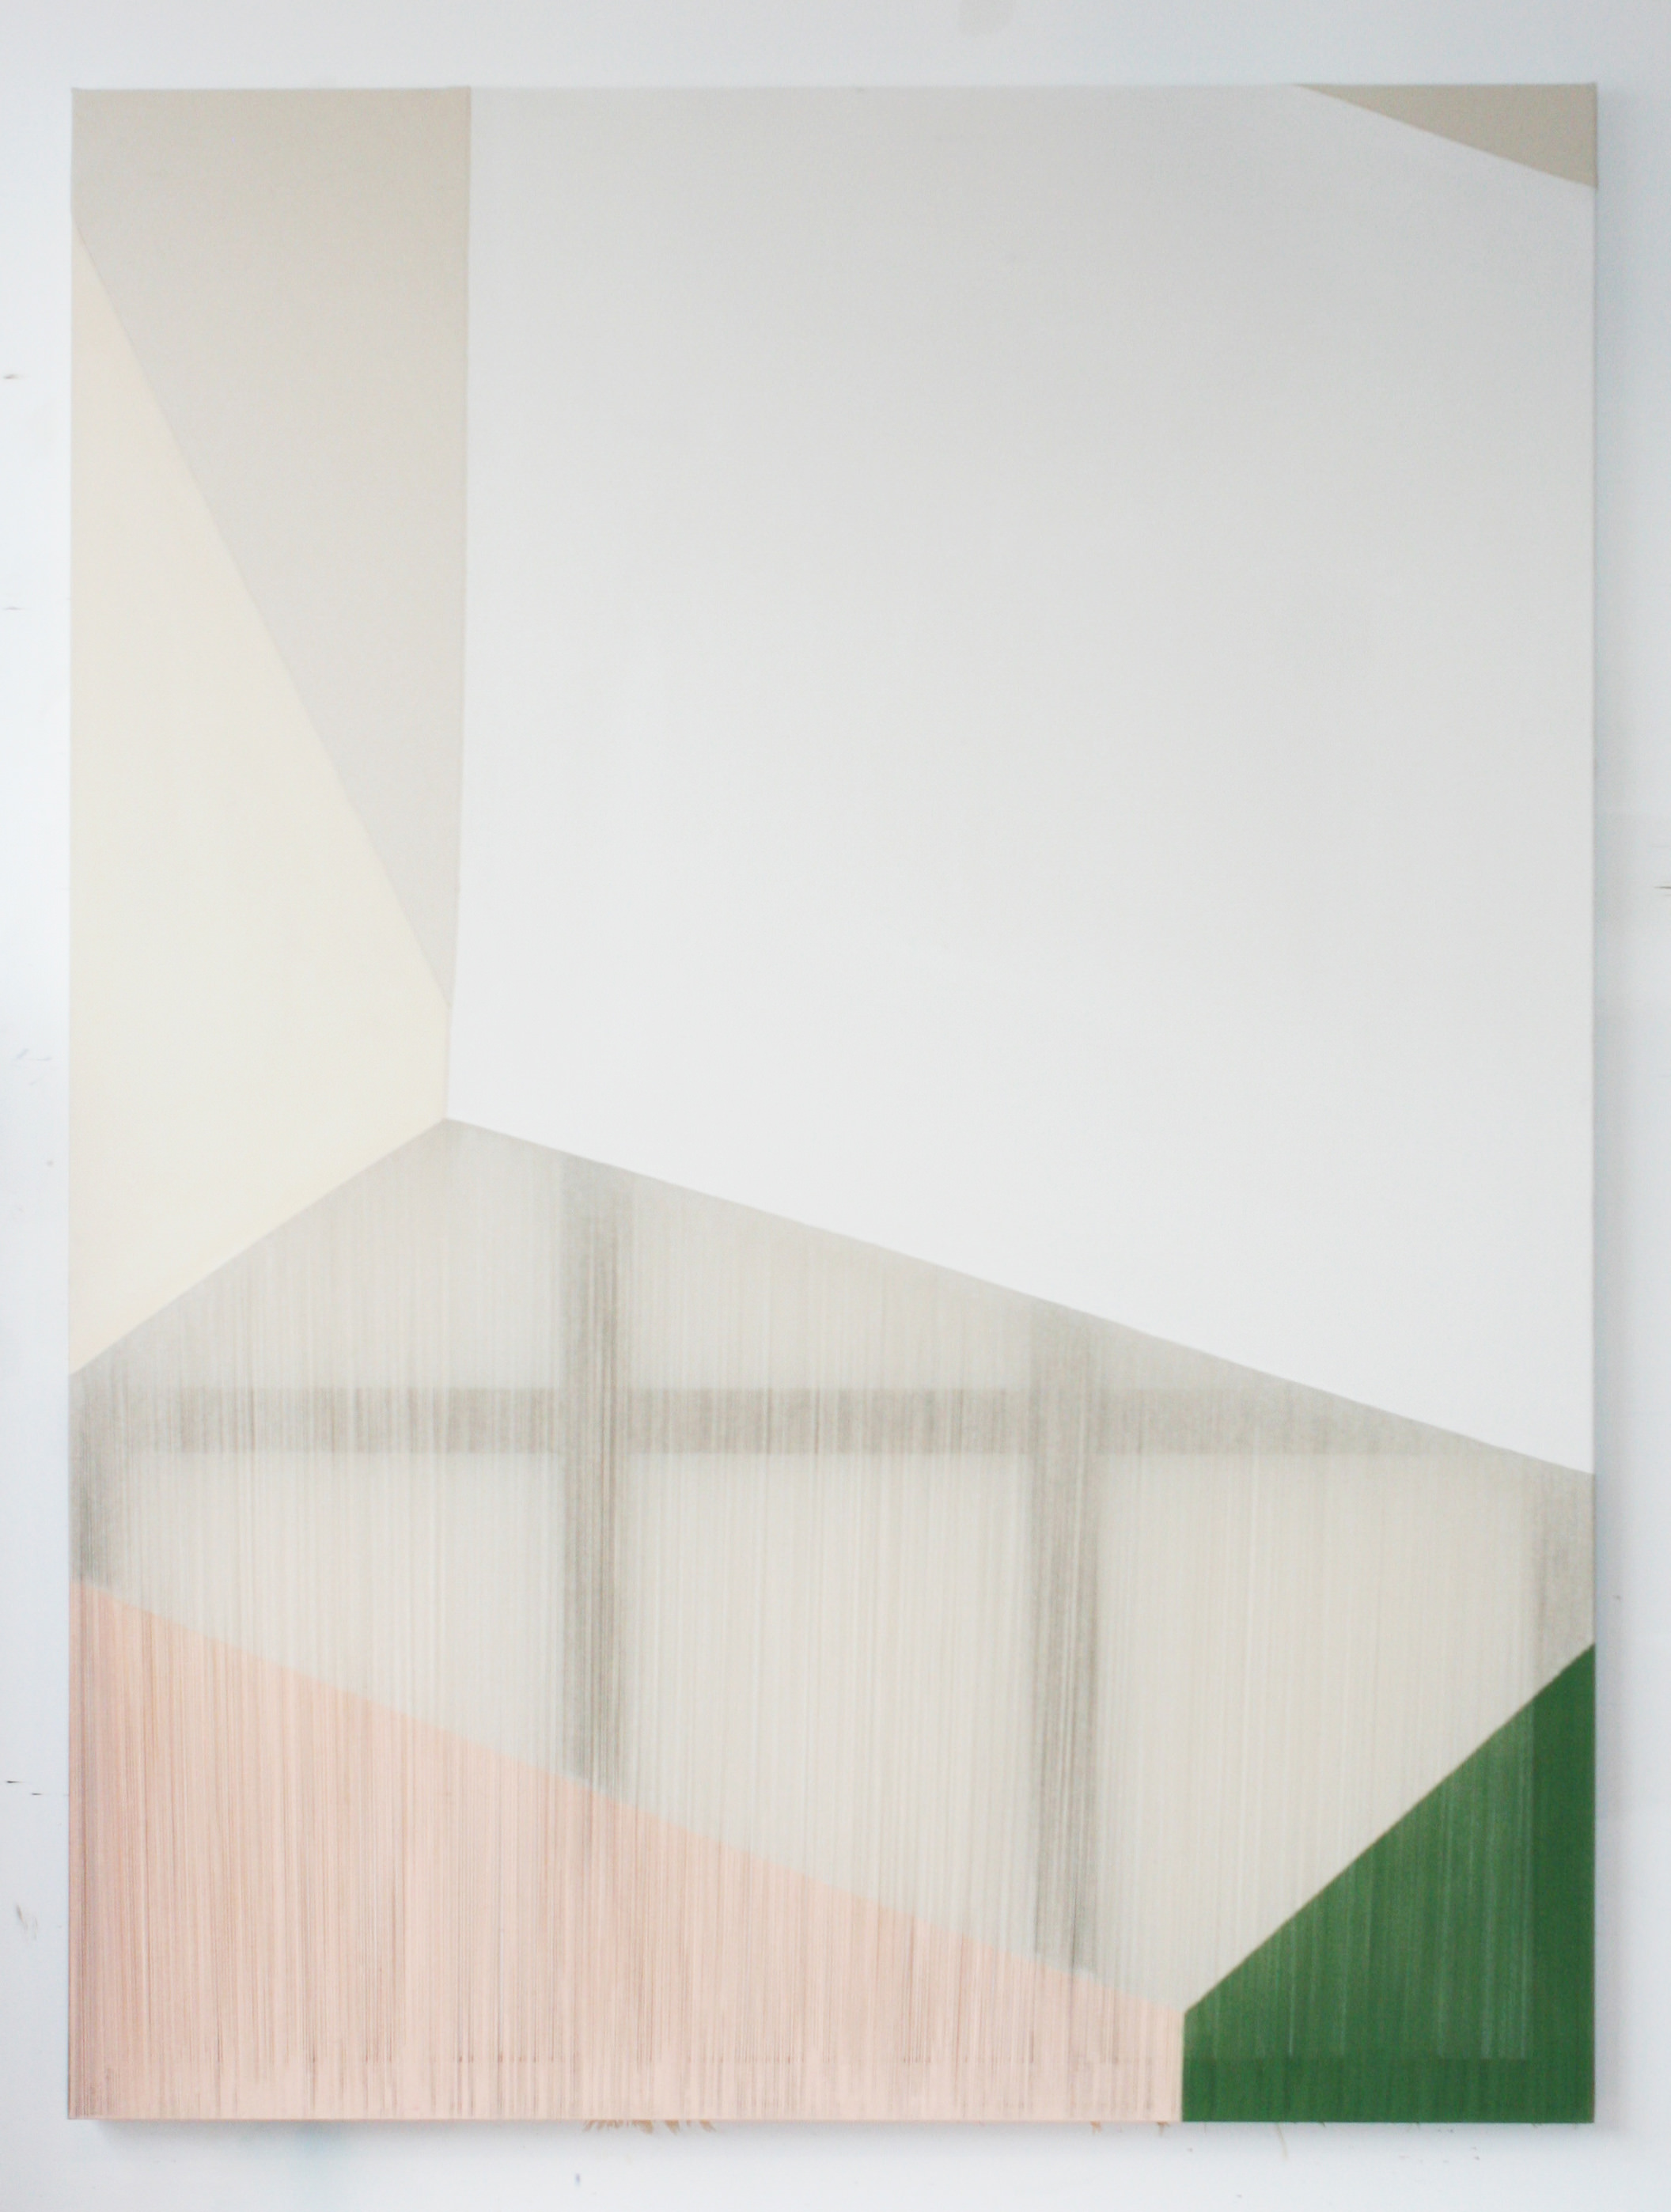 Rebecca Ward, epicene, 2014, acrylic on stitched canvas, 80 x 60 in